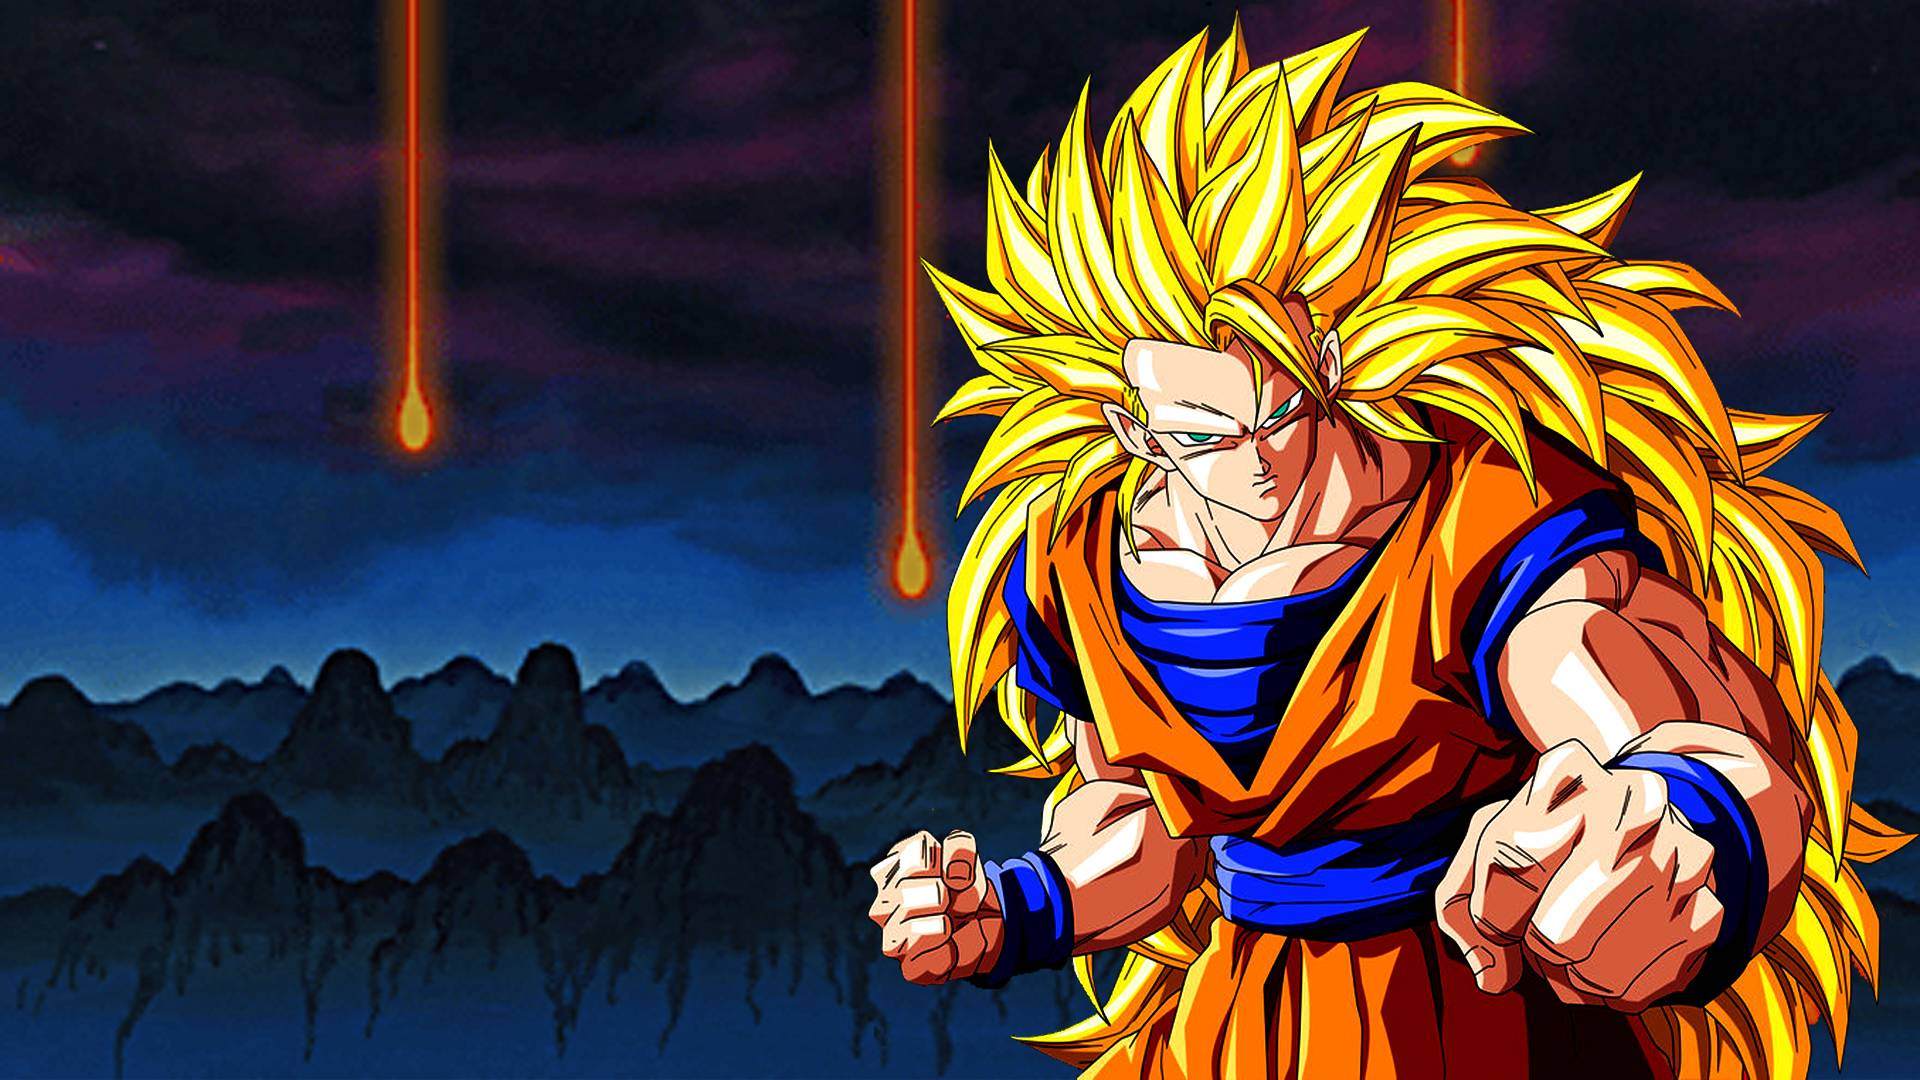 Goku Super Saiyan 3 HD Wallpaper